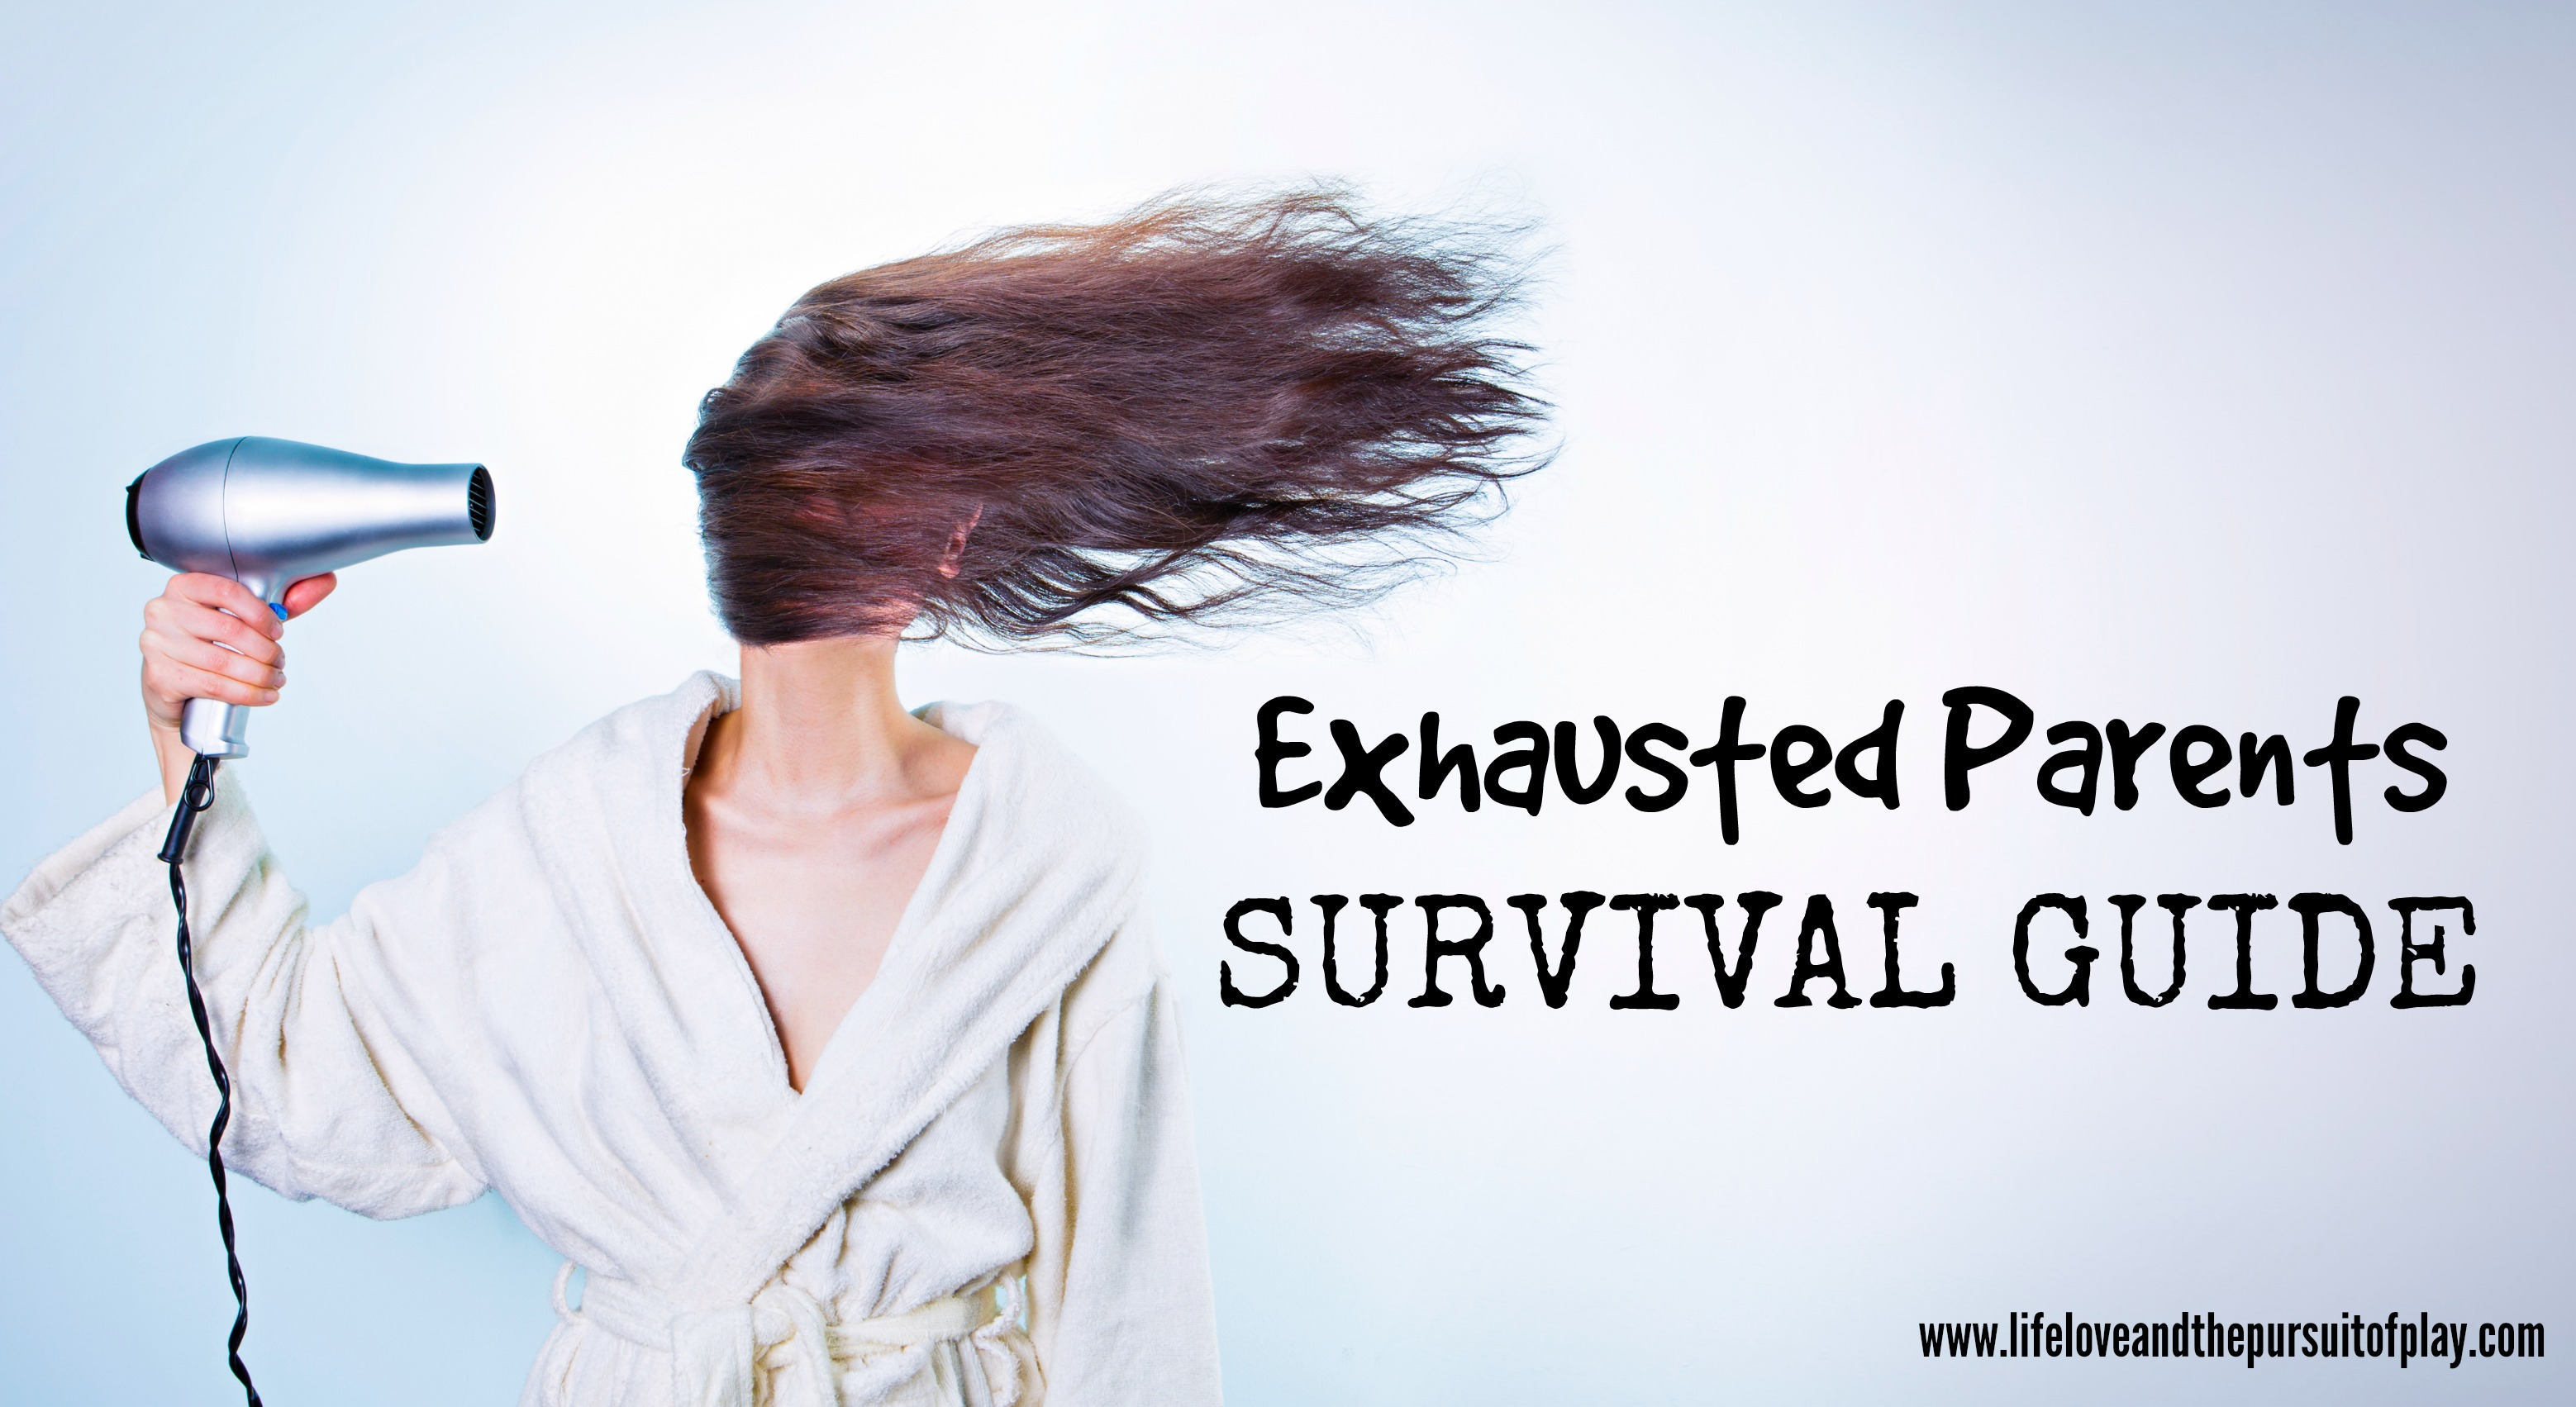 Exhausted Parents Survival Guide